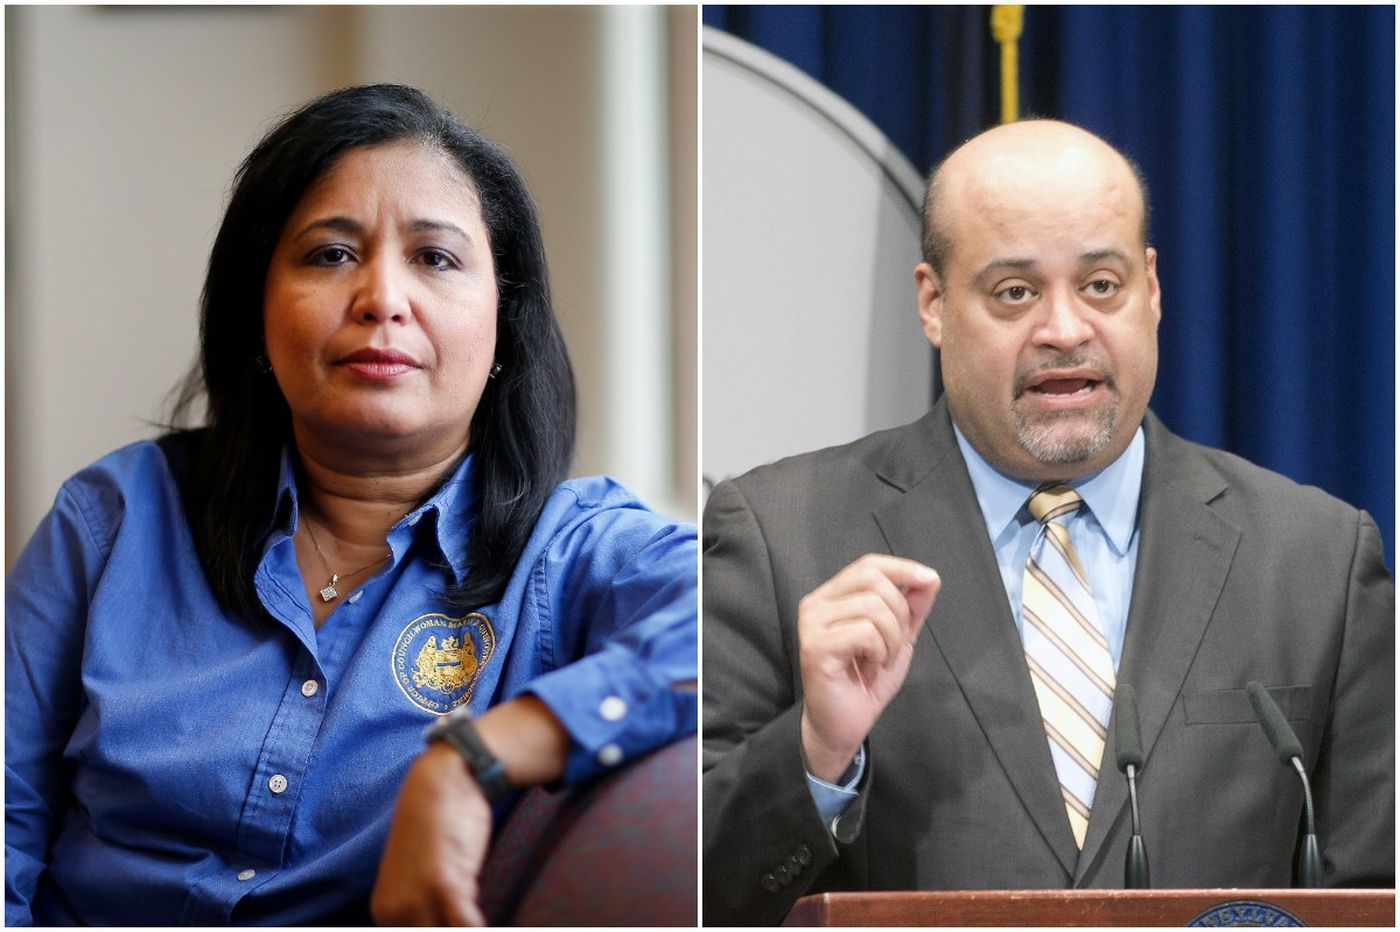 Quiñones-Sánchez and Cruz, after years of fighting, face off in the 7th District | Philly Clout